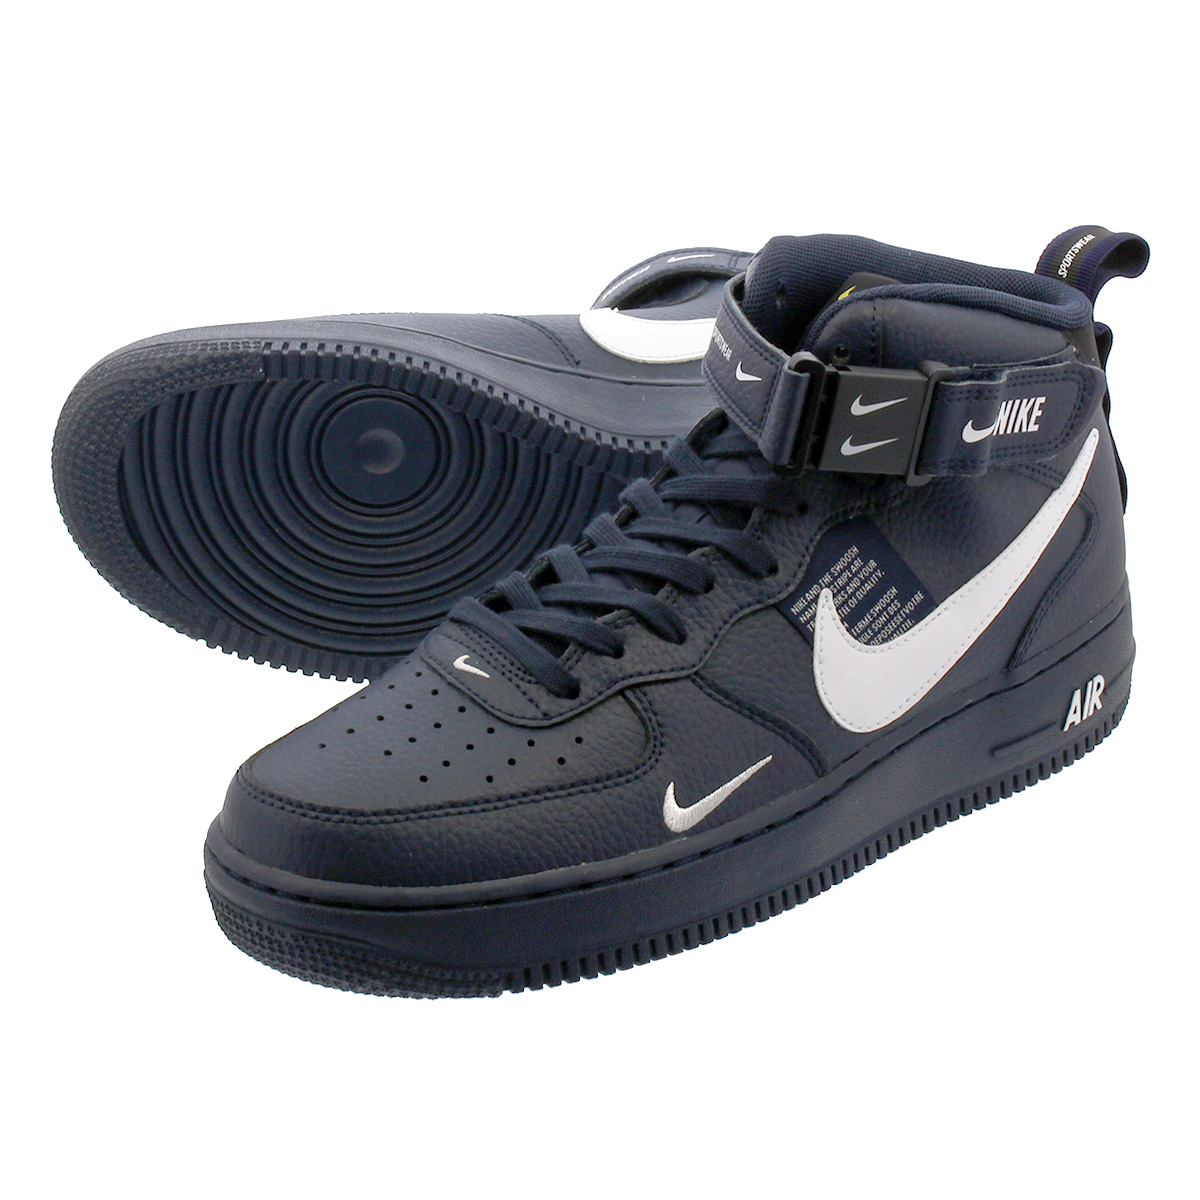 NIKE AIR FORCE 1 MID '07 LV8 UTILITY Nike air force 1 mid '07 LV8 utility  OBSIDIAN/BLACK/TOUR YELLOW/WHITE 804,609-403